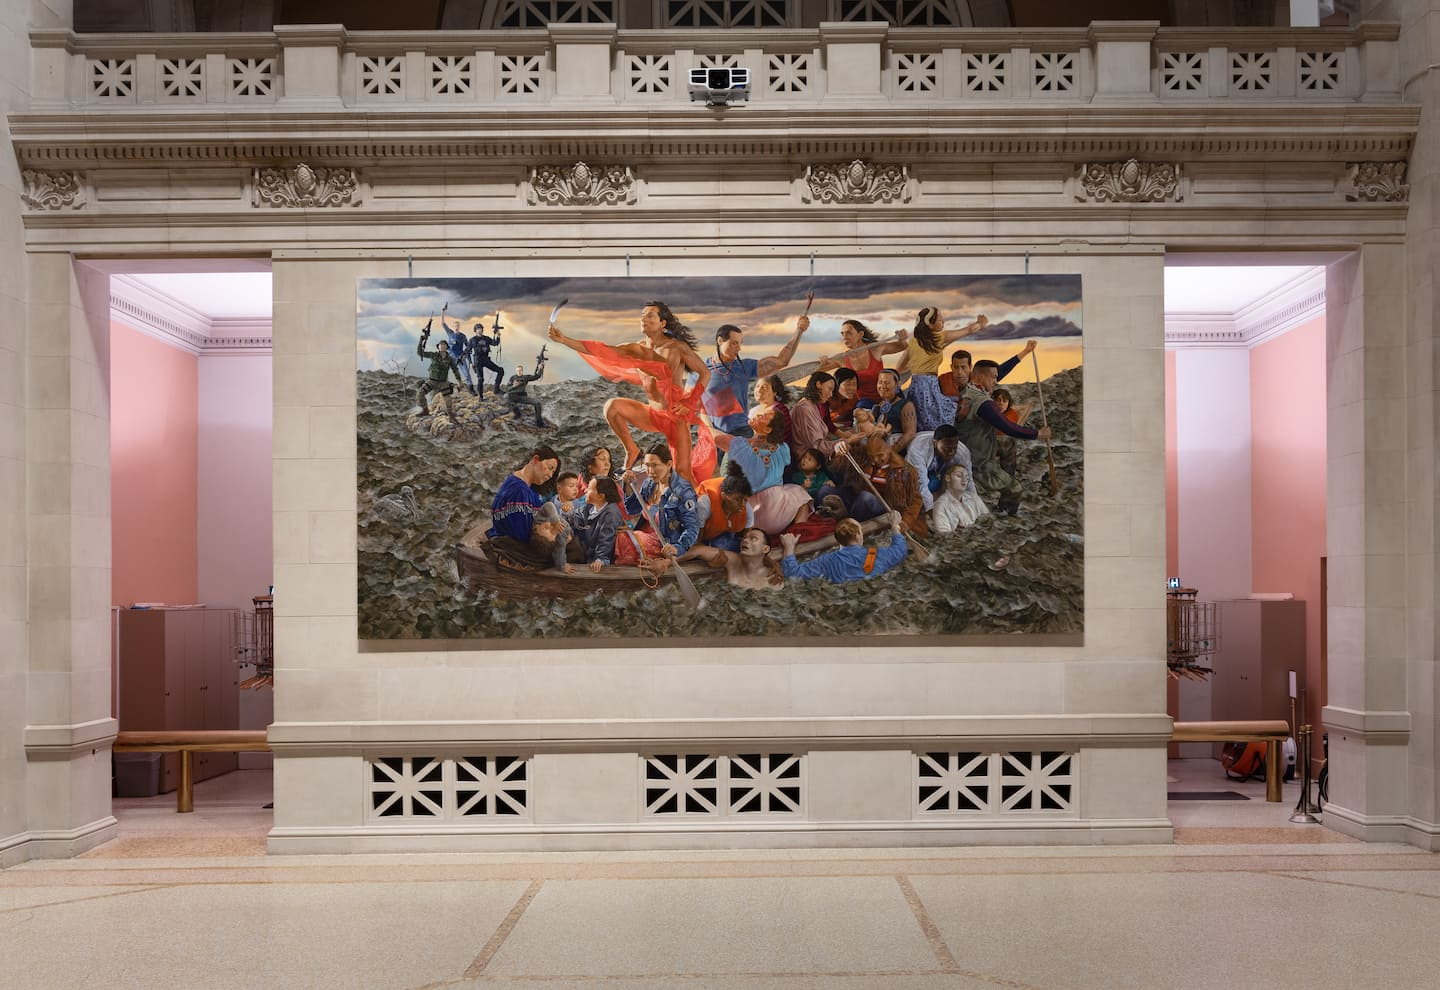 Grand history painting and landscapes reemerge to chart the collapse of America